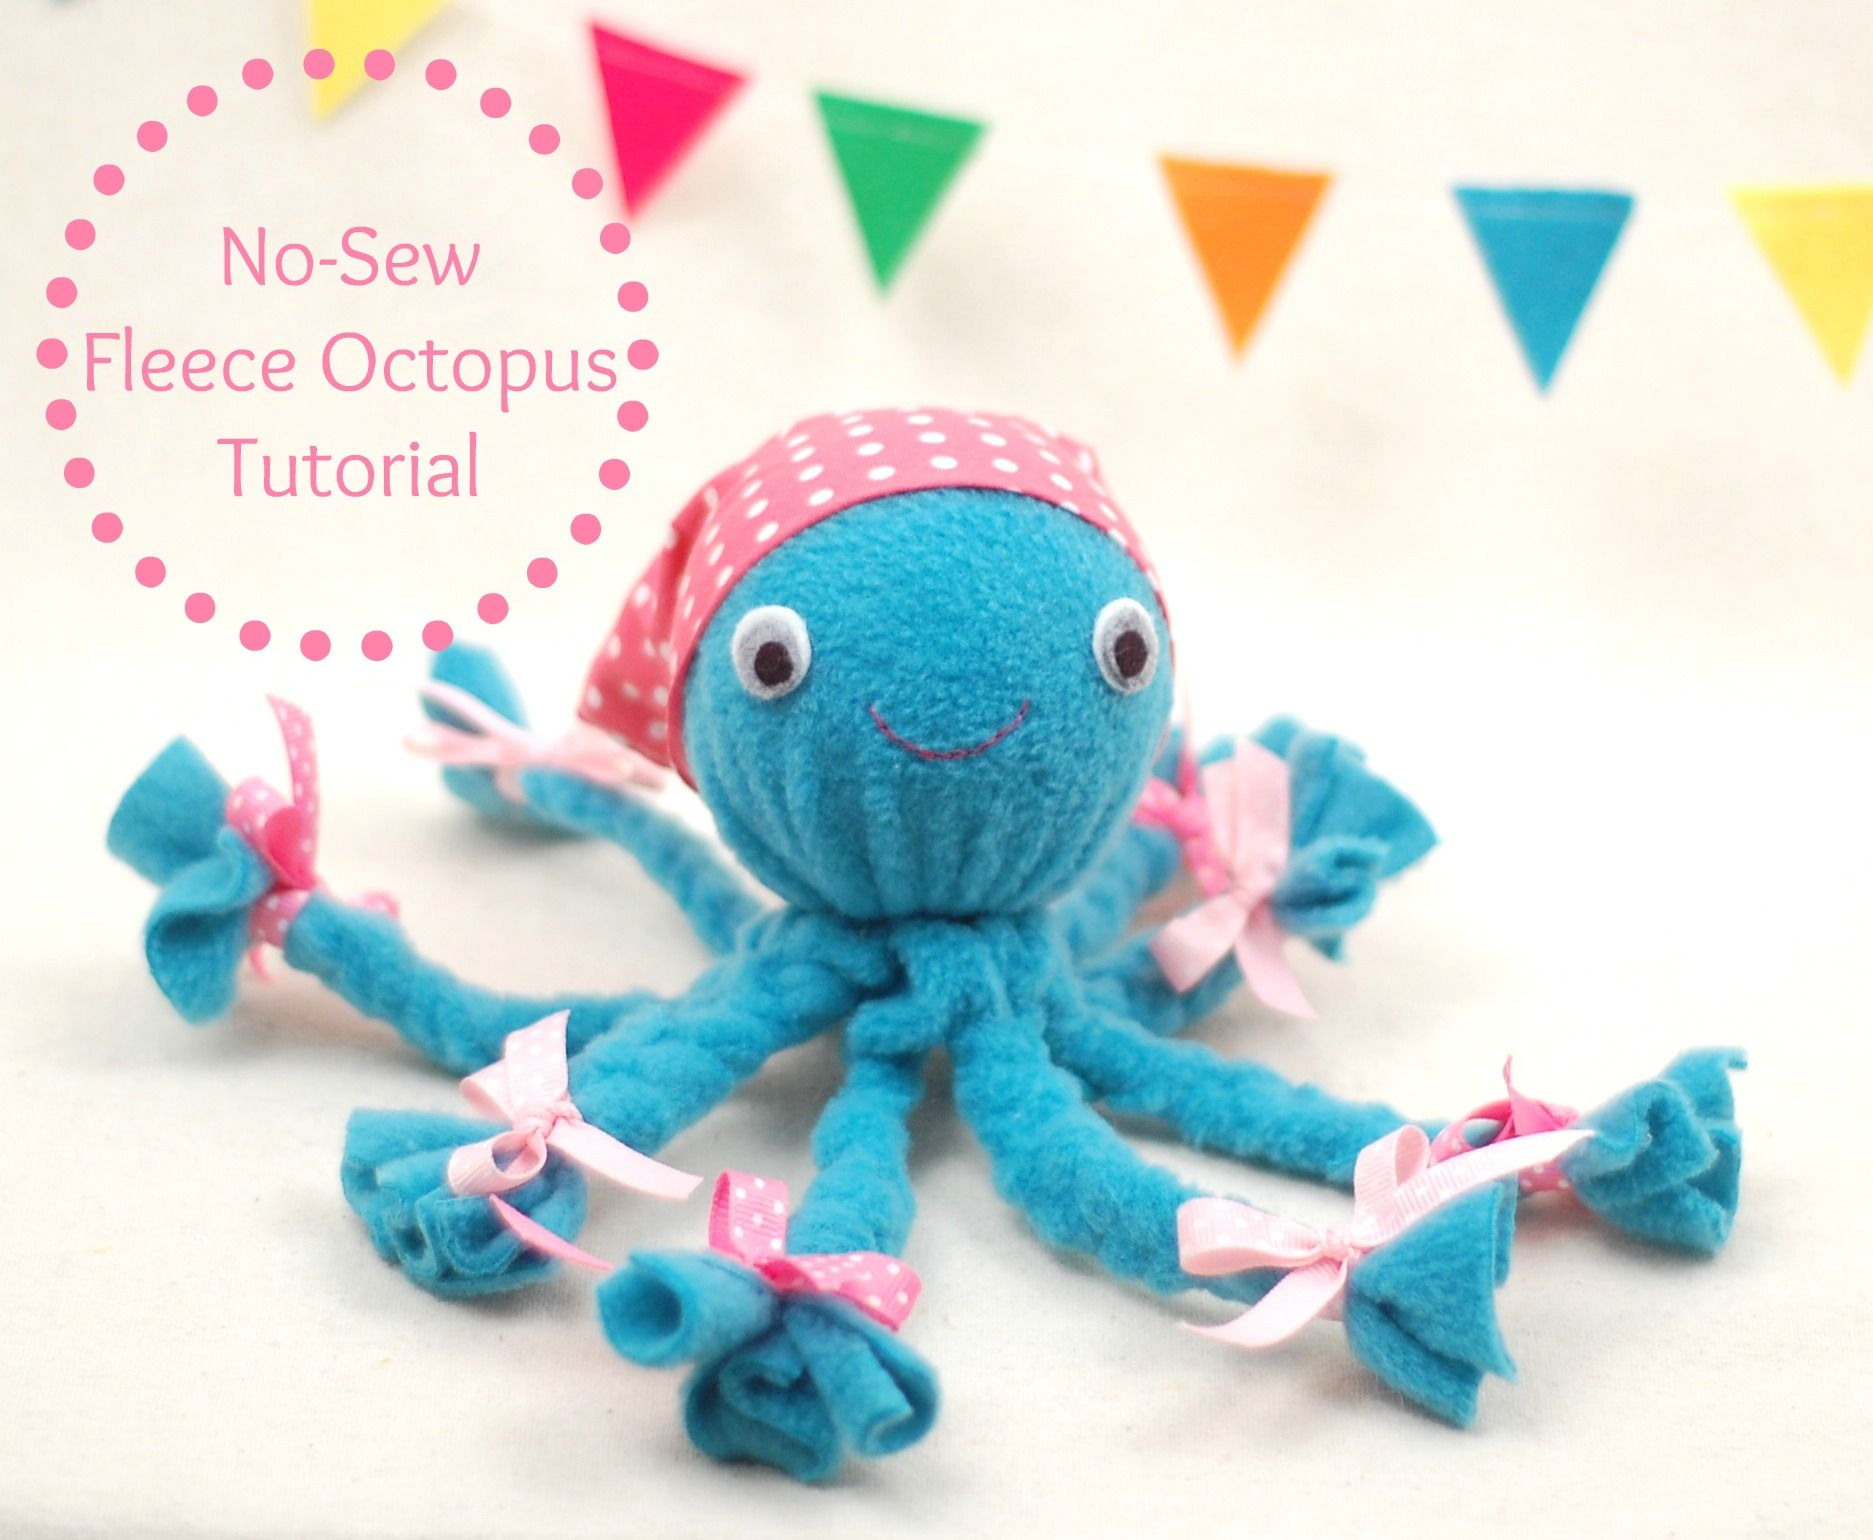 Nosew fleece octopus tutorial tutorials craft and crafty